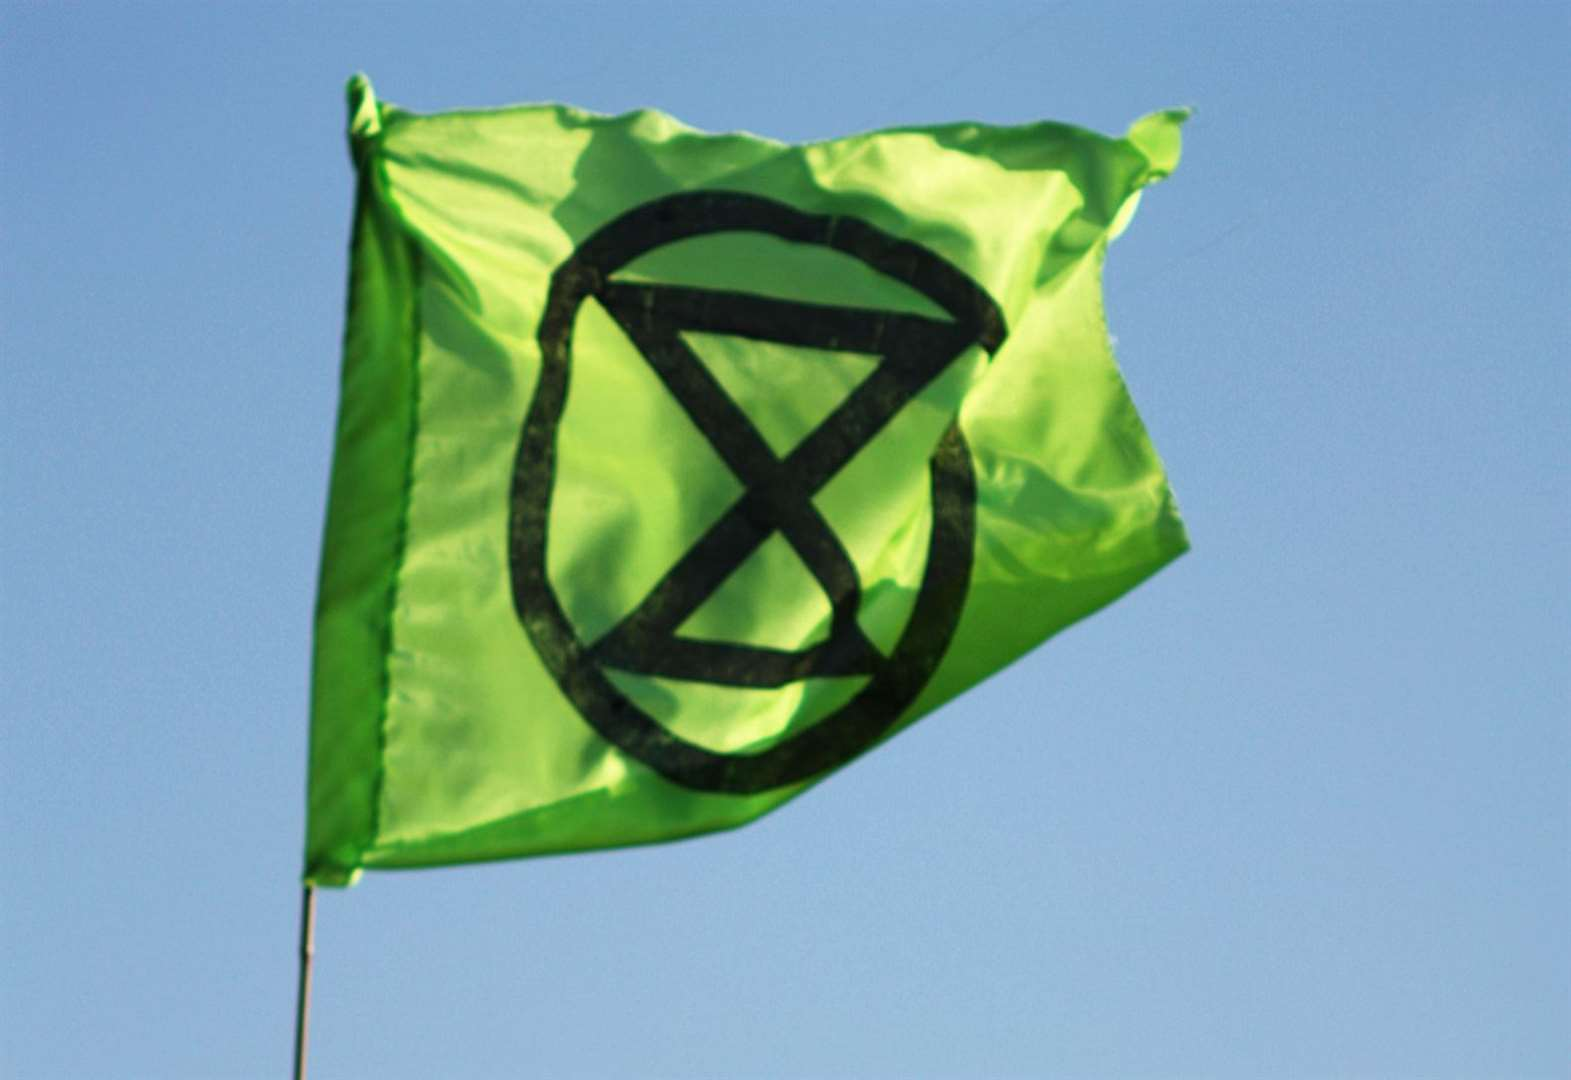 Bury St Edmunds man among 69 people charged over Extinction Rebellion protests